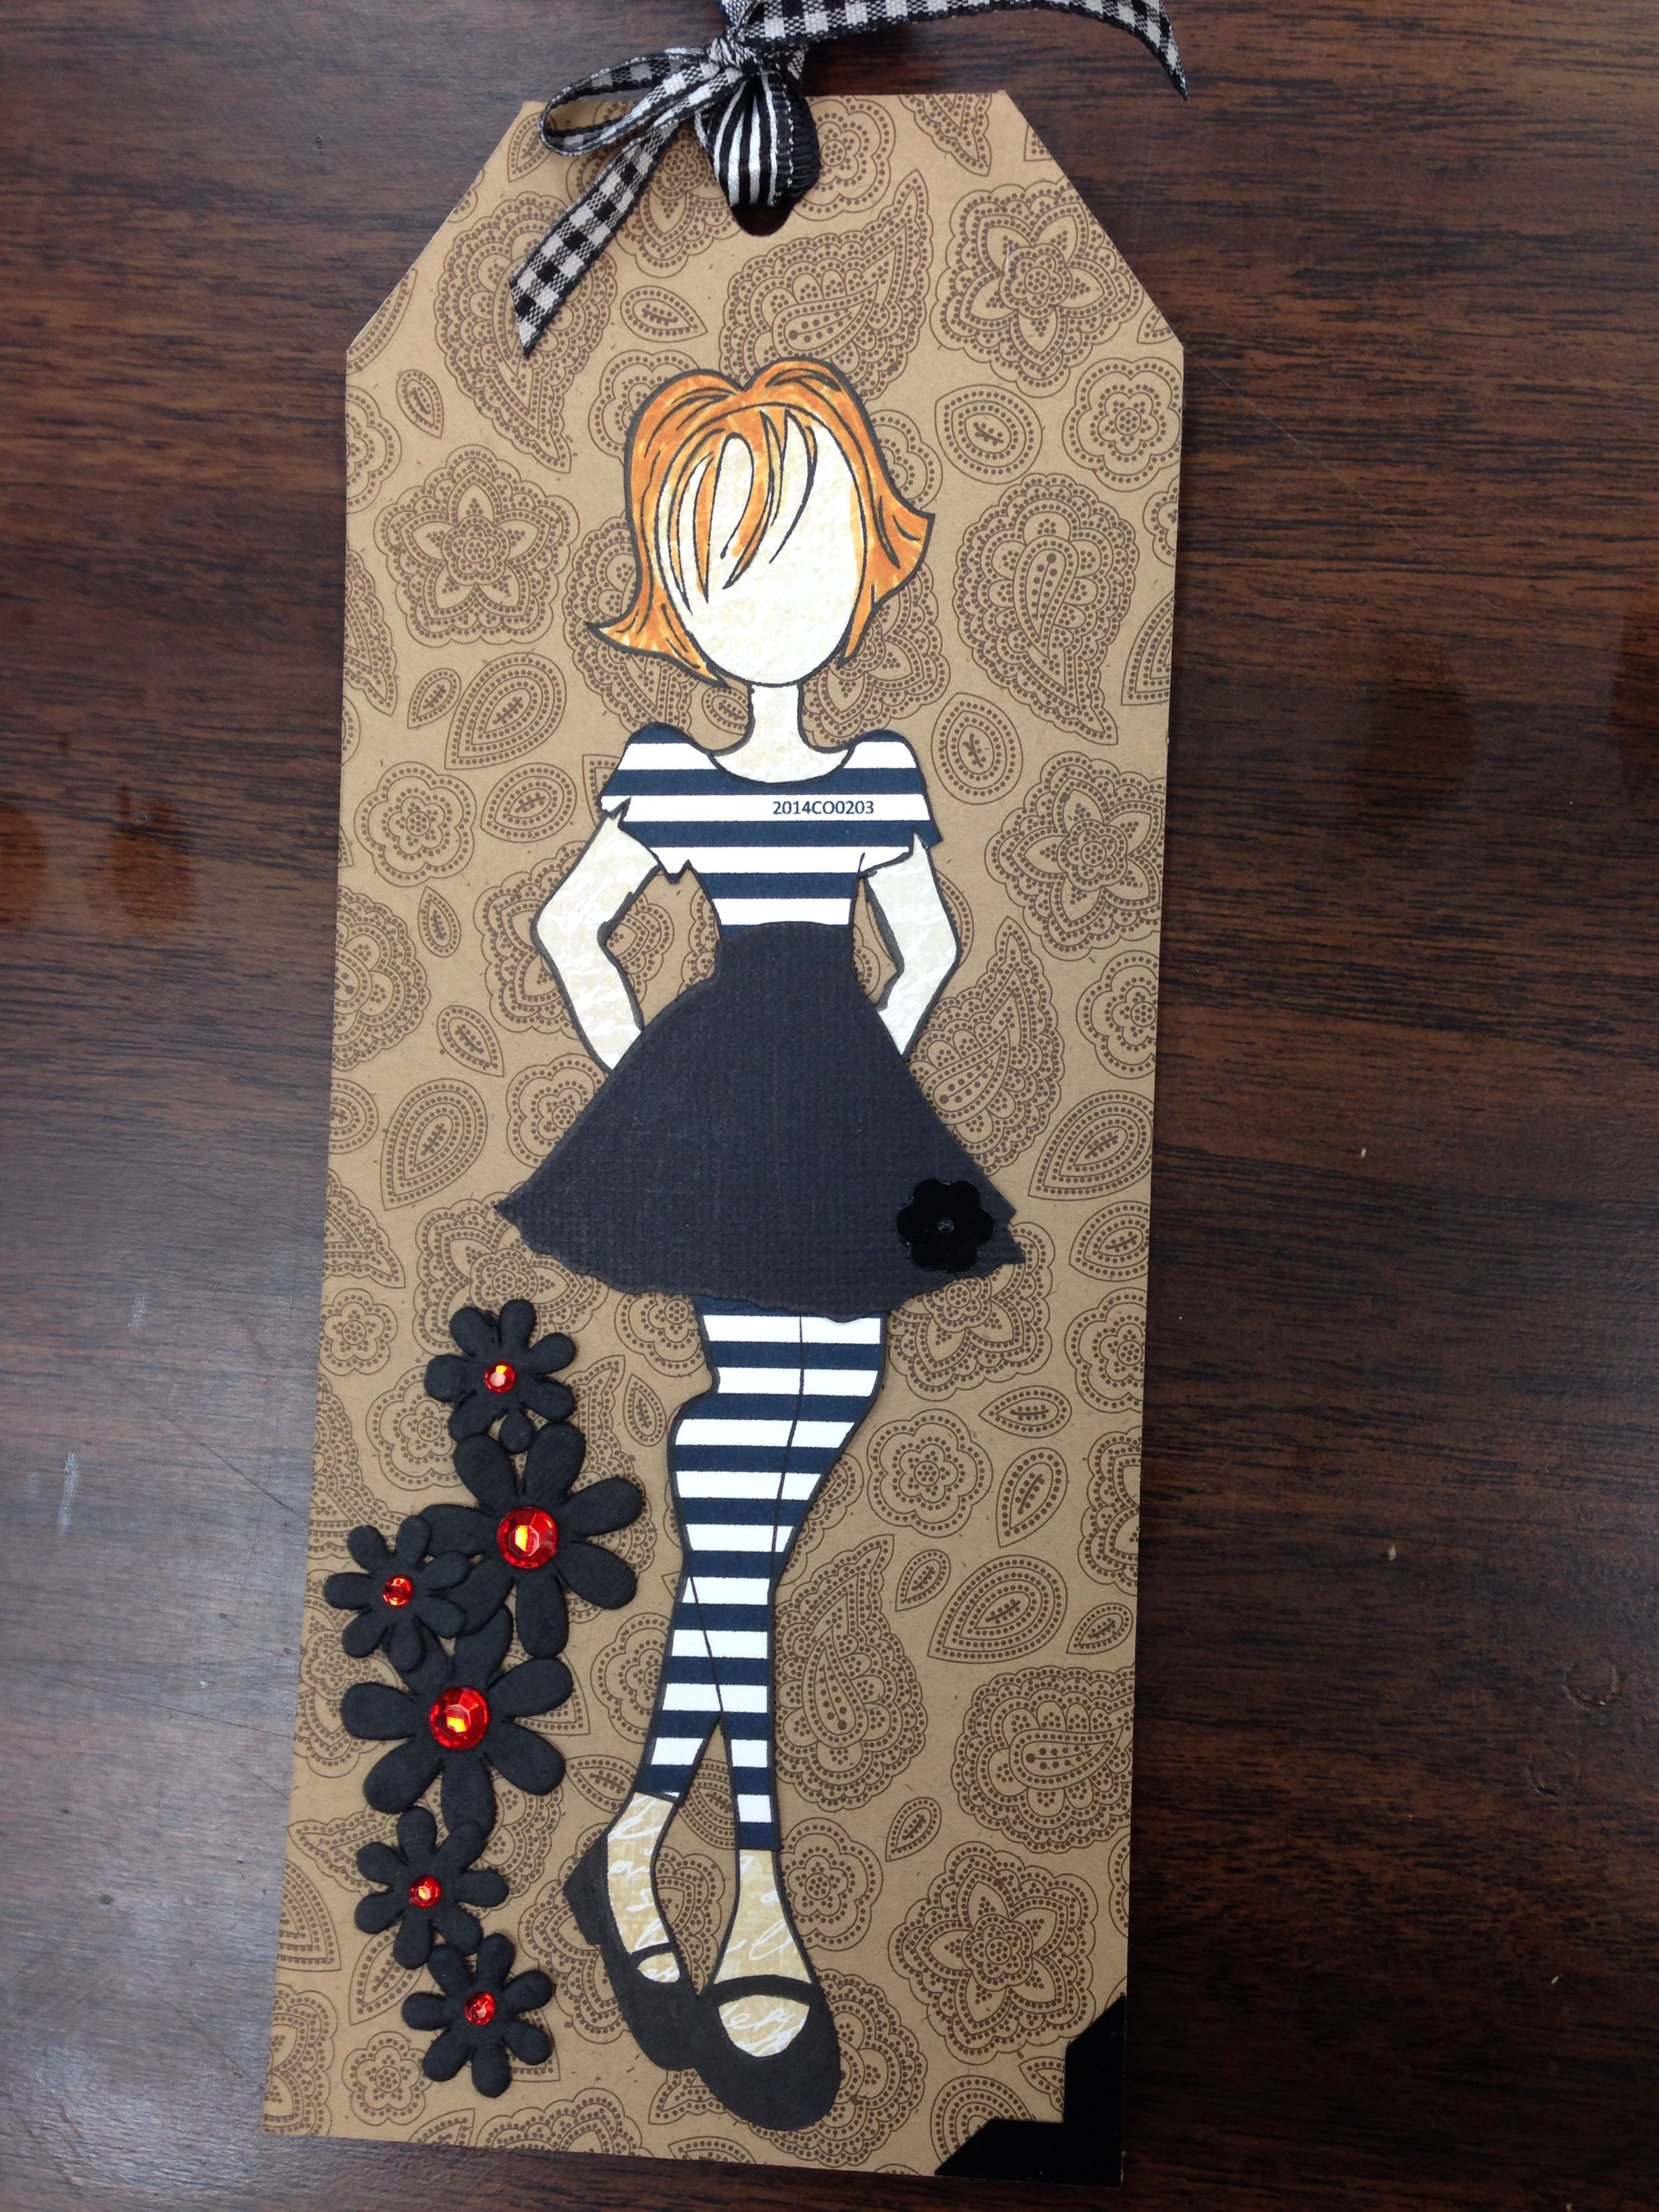 Janice's girl gone bad inmate 2014CO0203 Prima paper